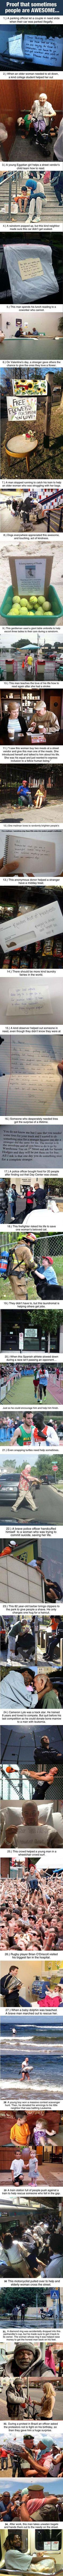 There still are amazing people in this world... Faith in humanity restored.